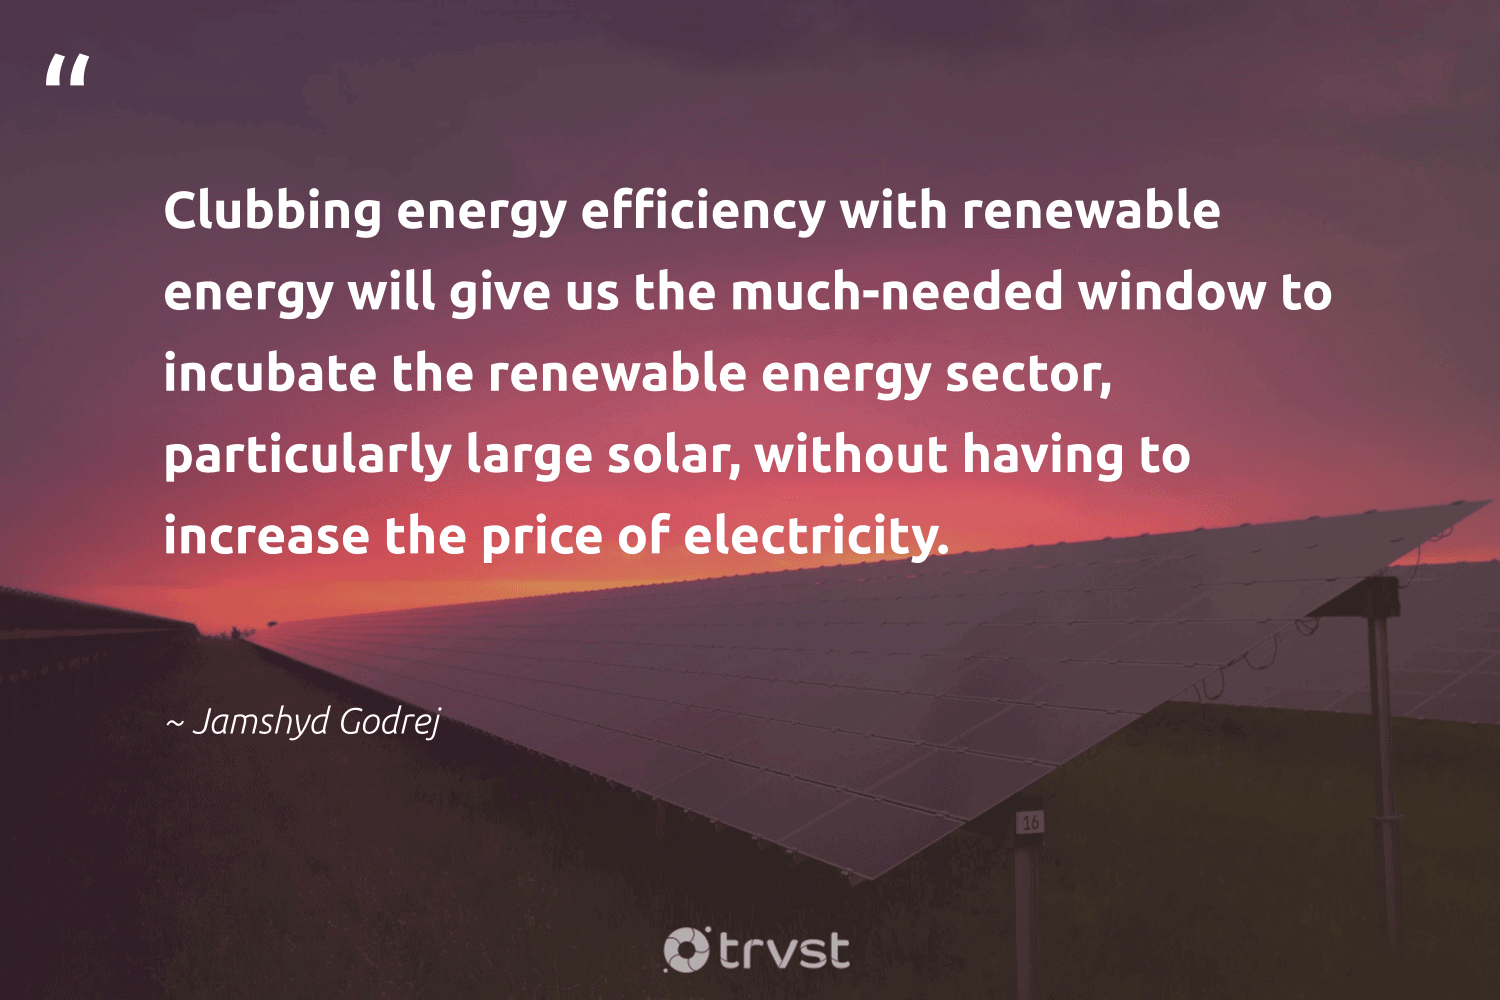 """""""Clubbing energy efficiency with renewable energy will give us the much-needed window to incubate the renewable energy sector, particularly large solar, without having to increase the price of electricity.""""  - Jamshyd Godrej #trvst #quotes #renewableenergy #energy #renewable #solar #lowcarbon #cleanenergy #sustainability #carbon #gogreen #100percentclean"""